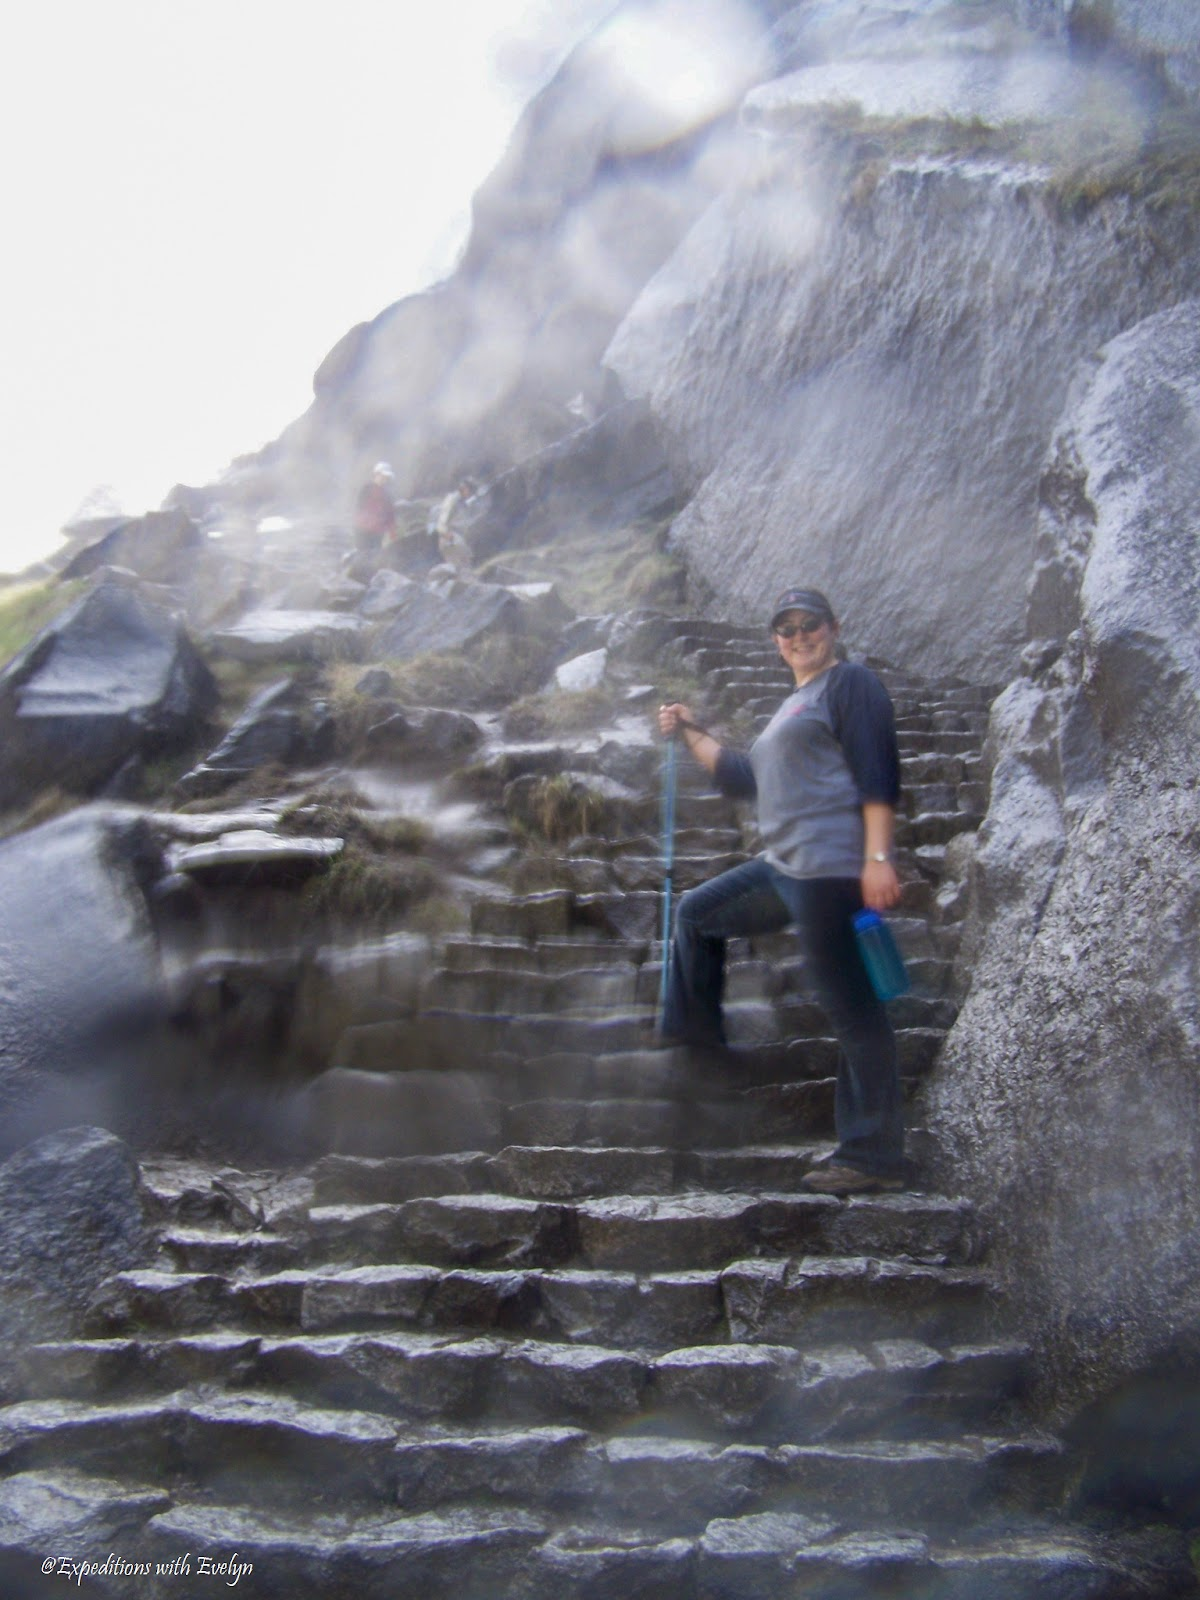 A hiker smiles on the steps of a mist cover trail in the spray of a waterfall.  Water droplets dot the camera lens.